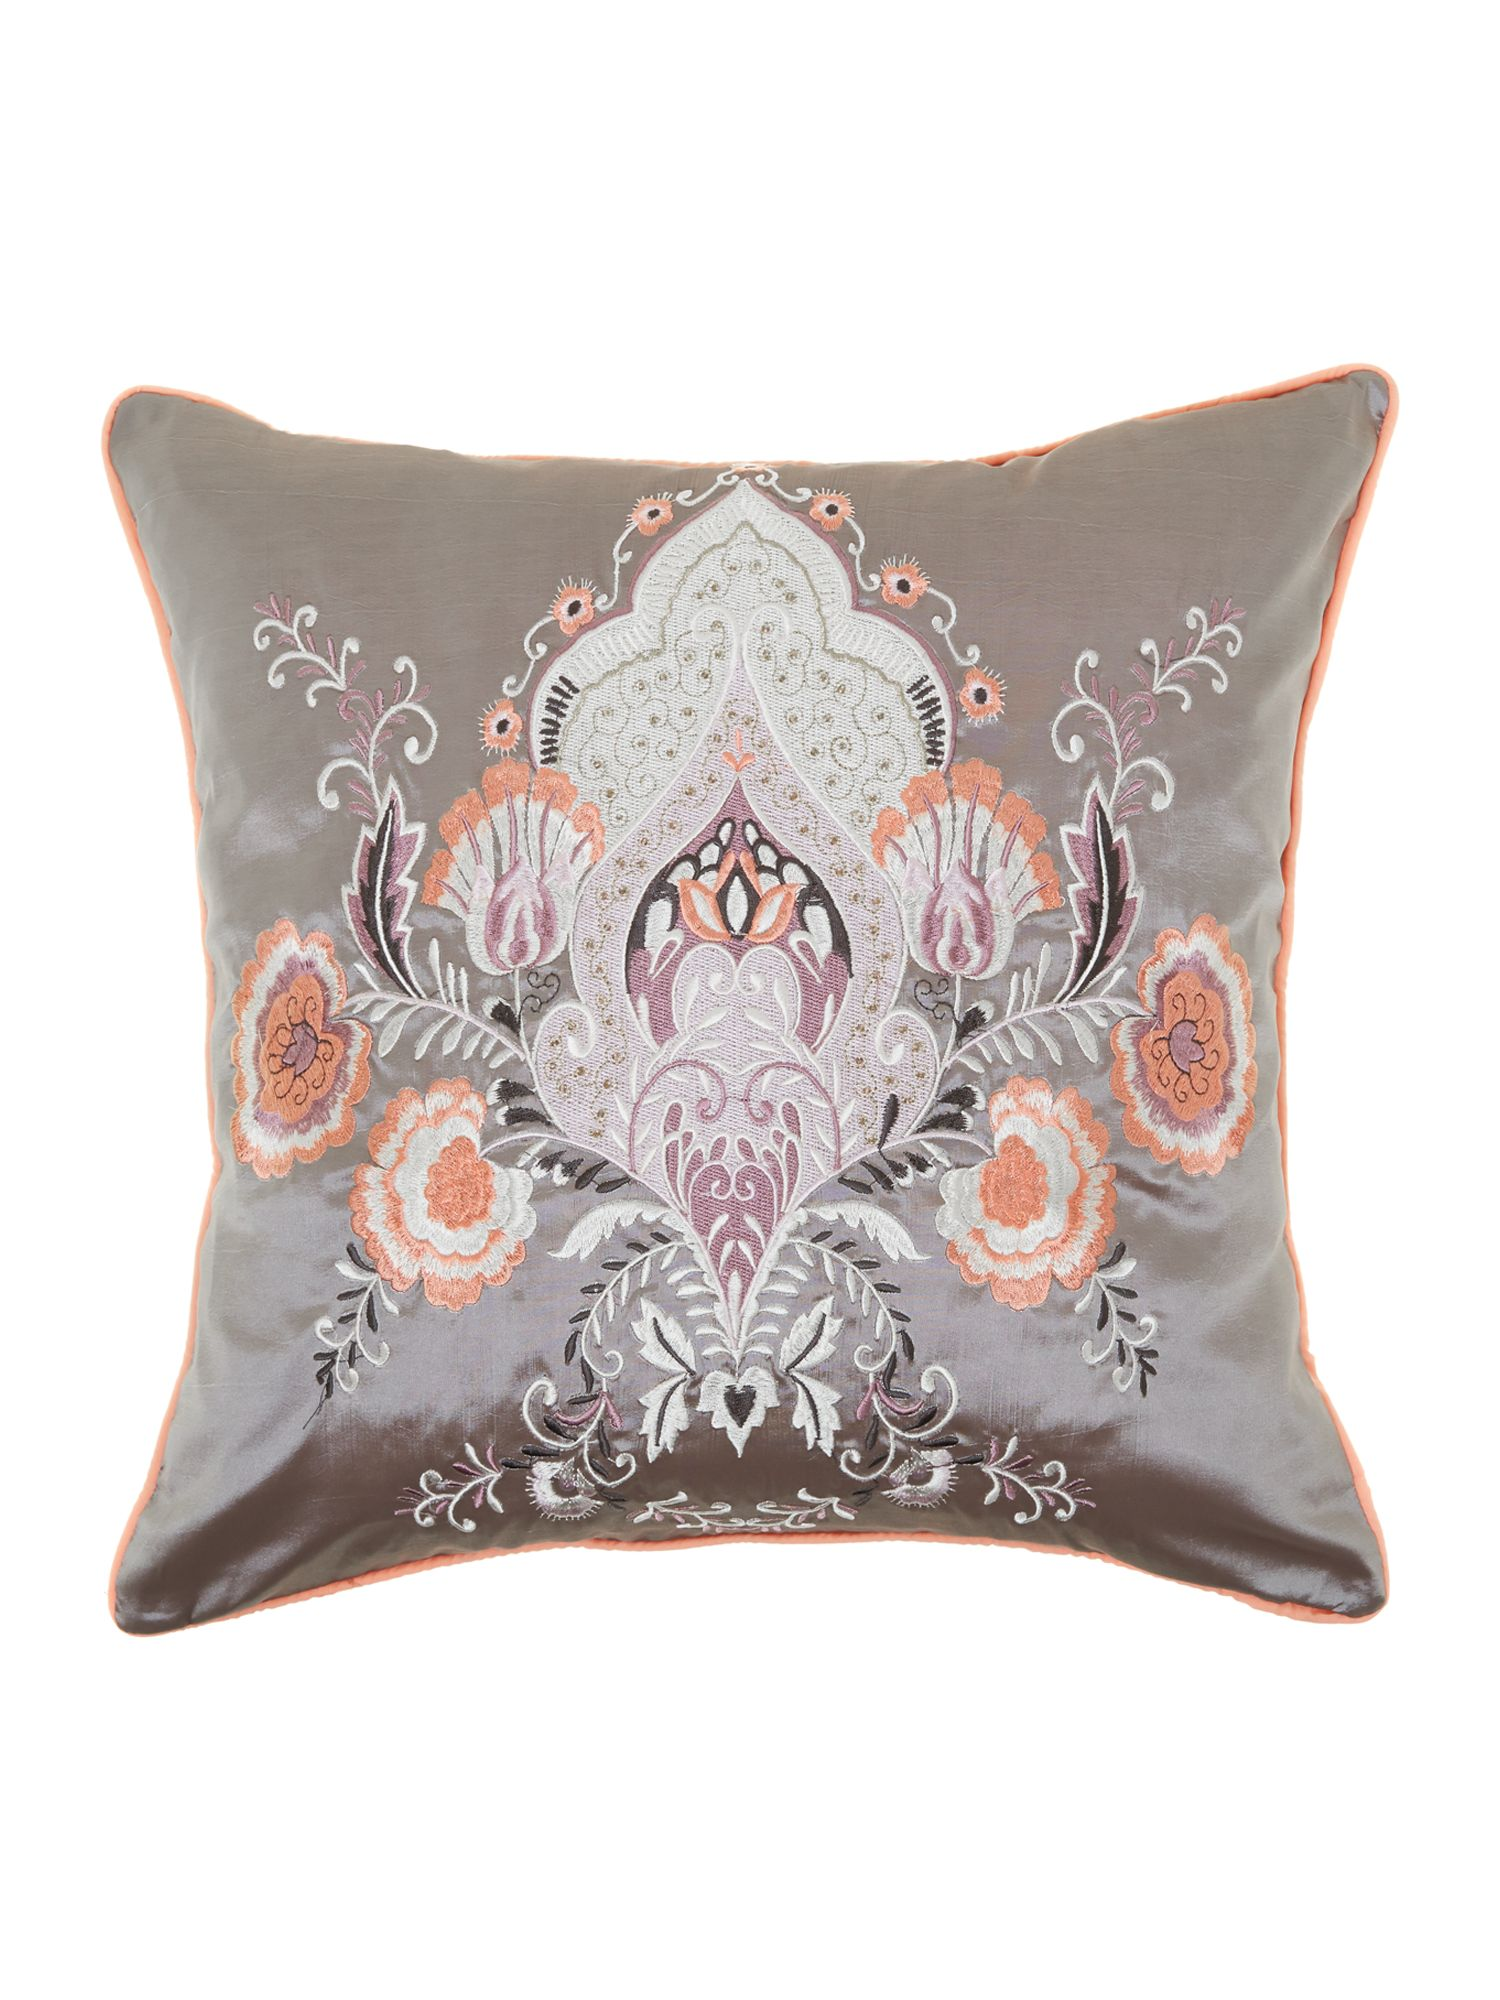 Jaipur embroidered cushion